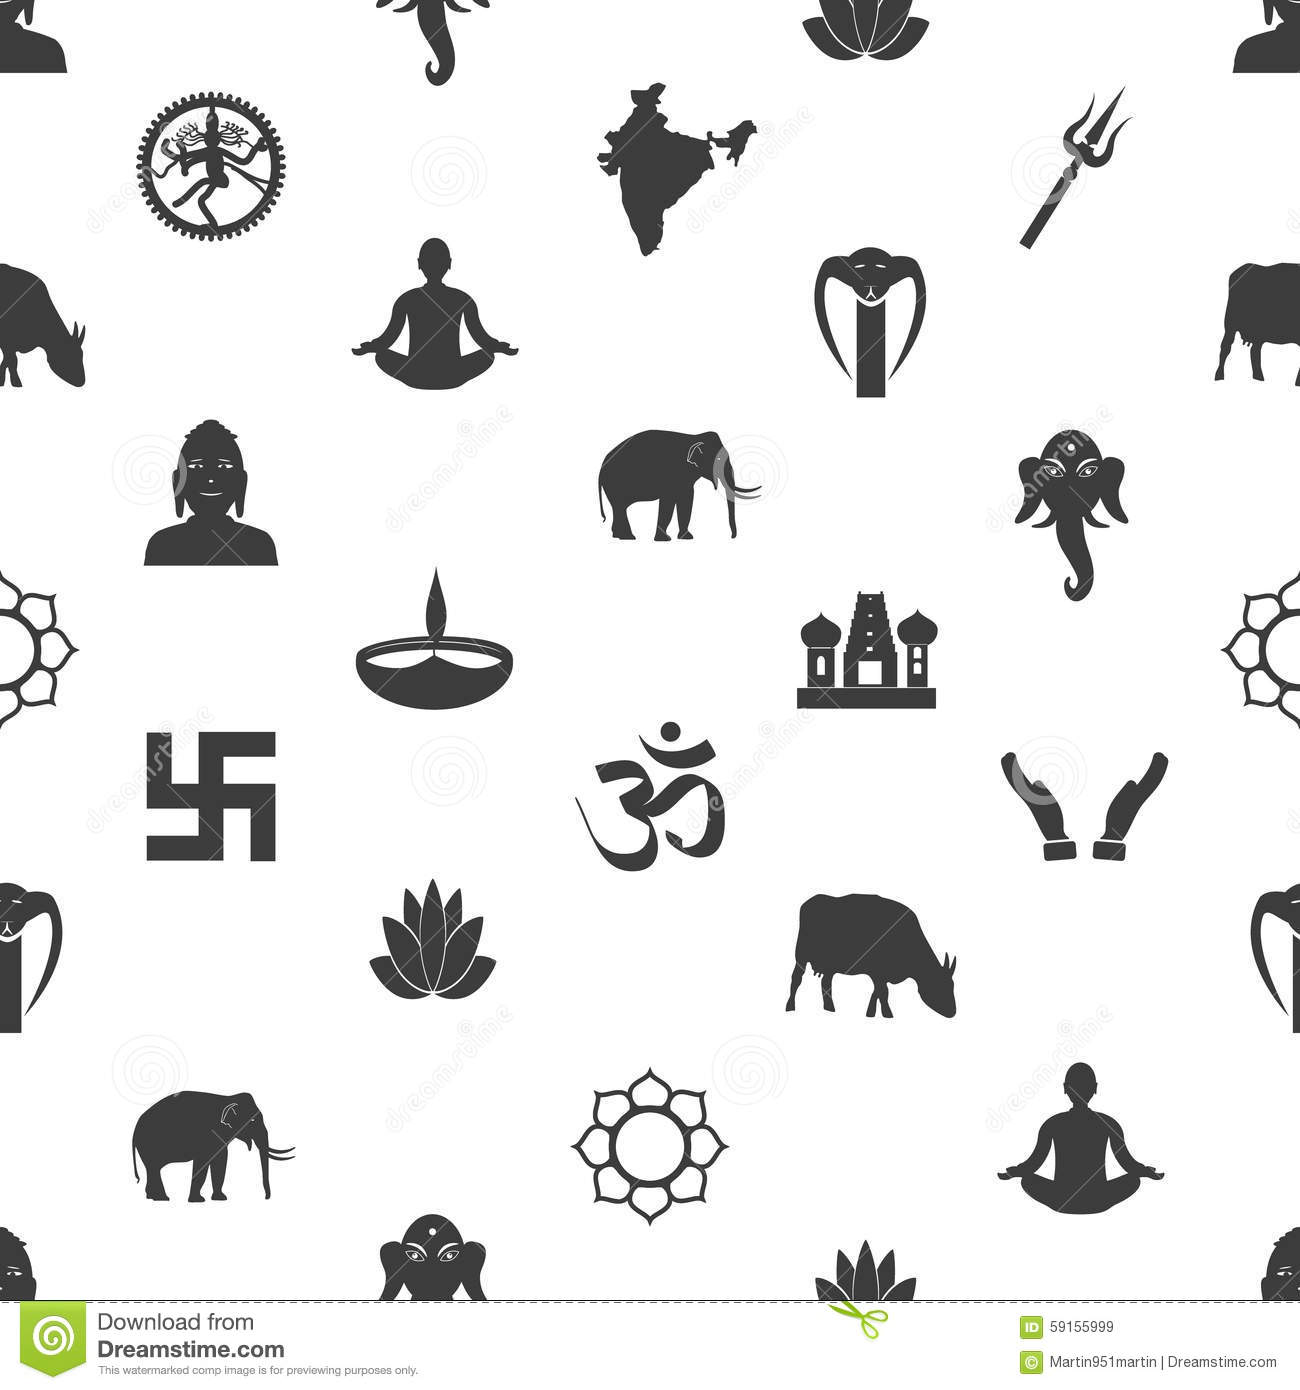 Hinduism religion symbol gallery symbol and sign ideas hinduism religions symbols vector set of icons eps10 stock vector hinduism religions symbols gray seamless pattern buycottarizona